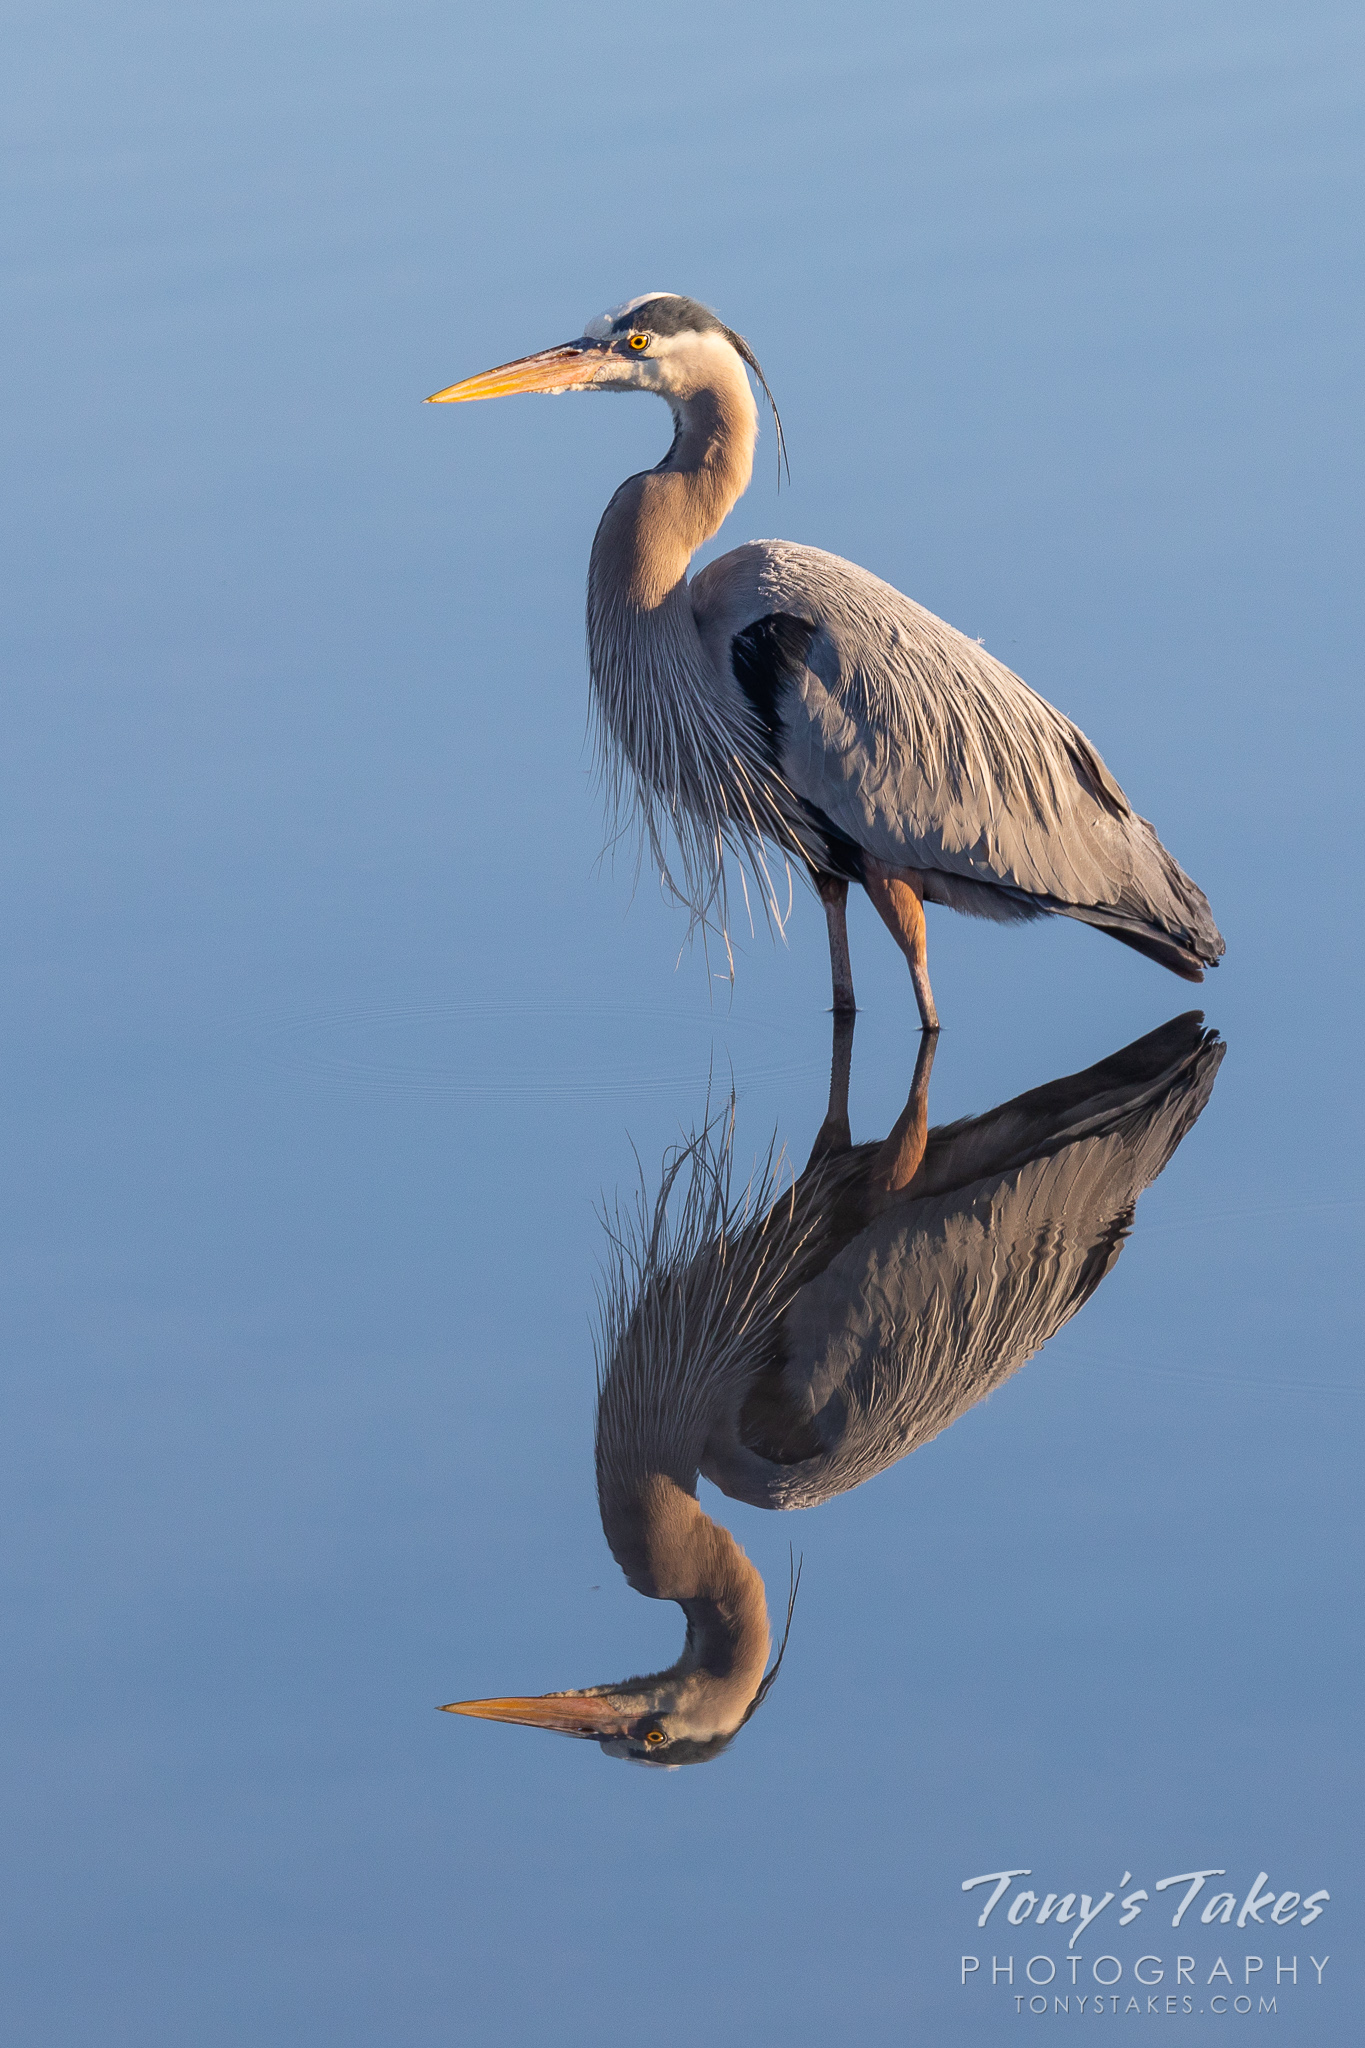 Mirror, mirror what do I see? A great blue heron on top and bottom